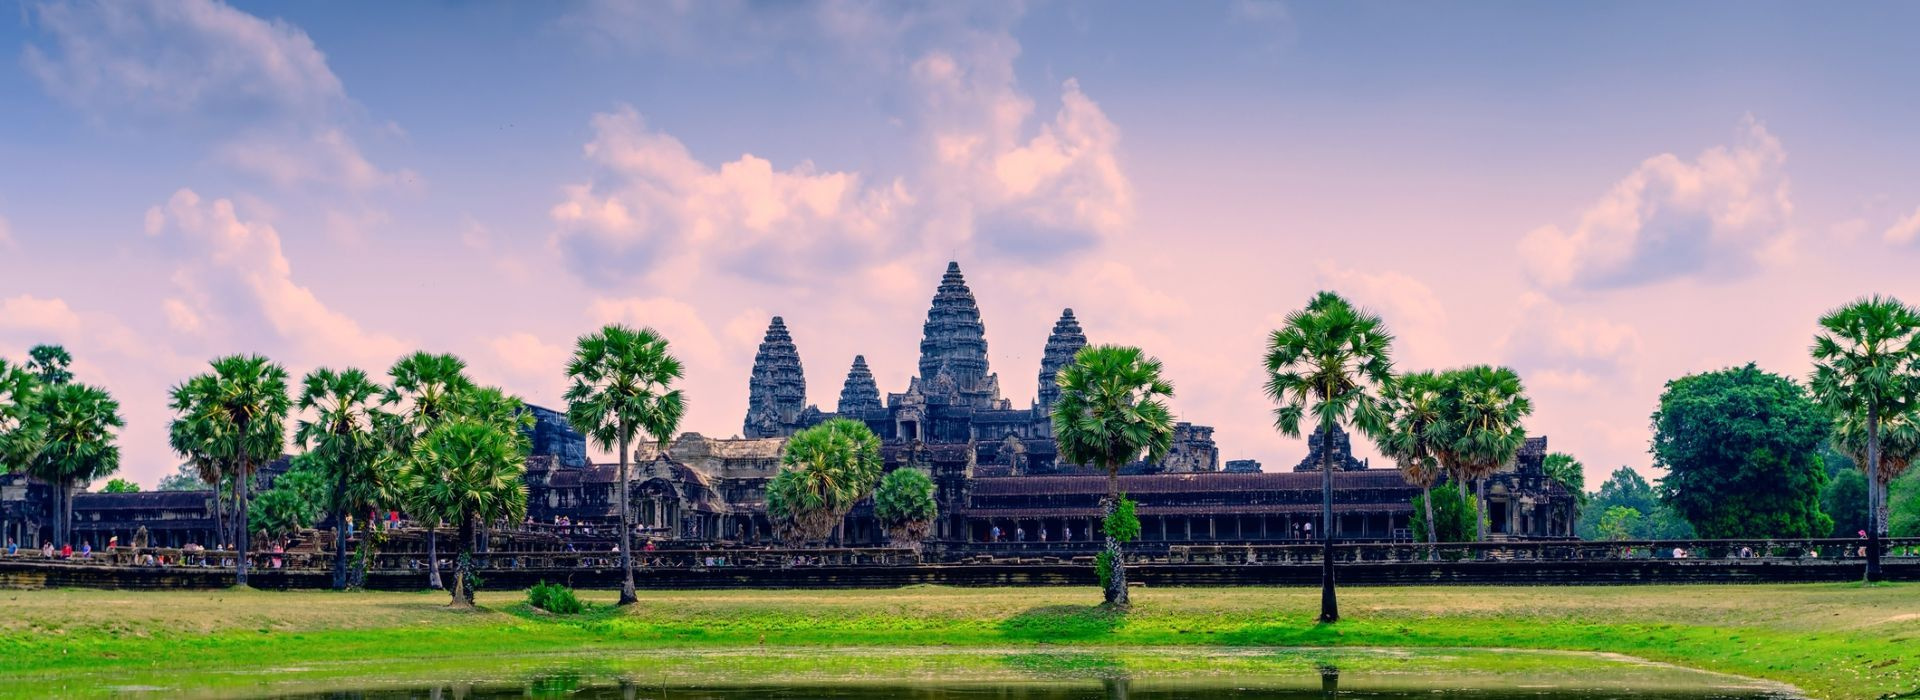 Active and outdoor Tours in Phnom Penh